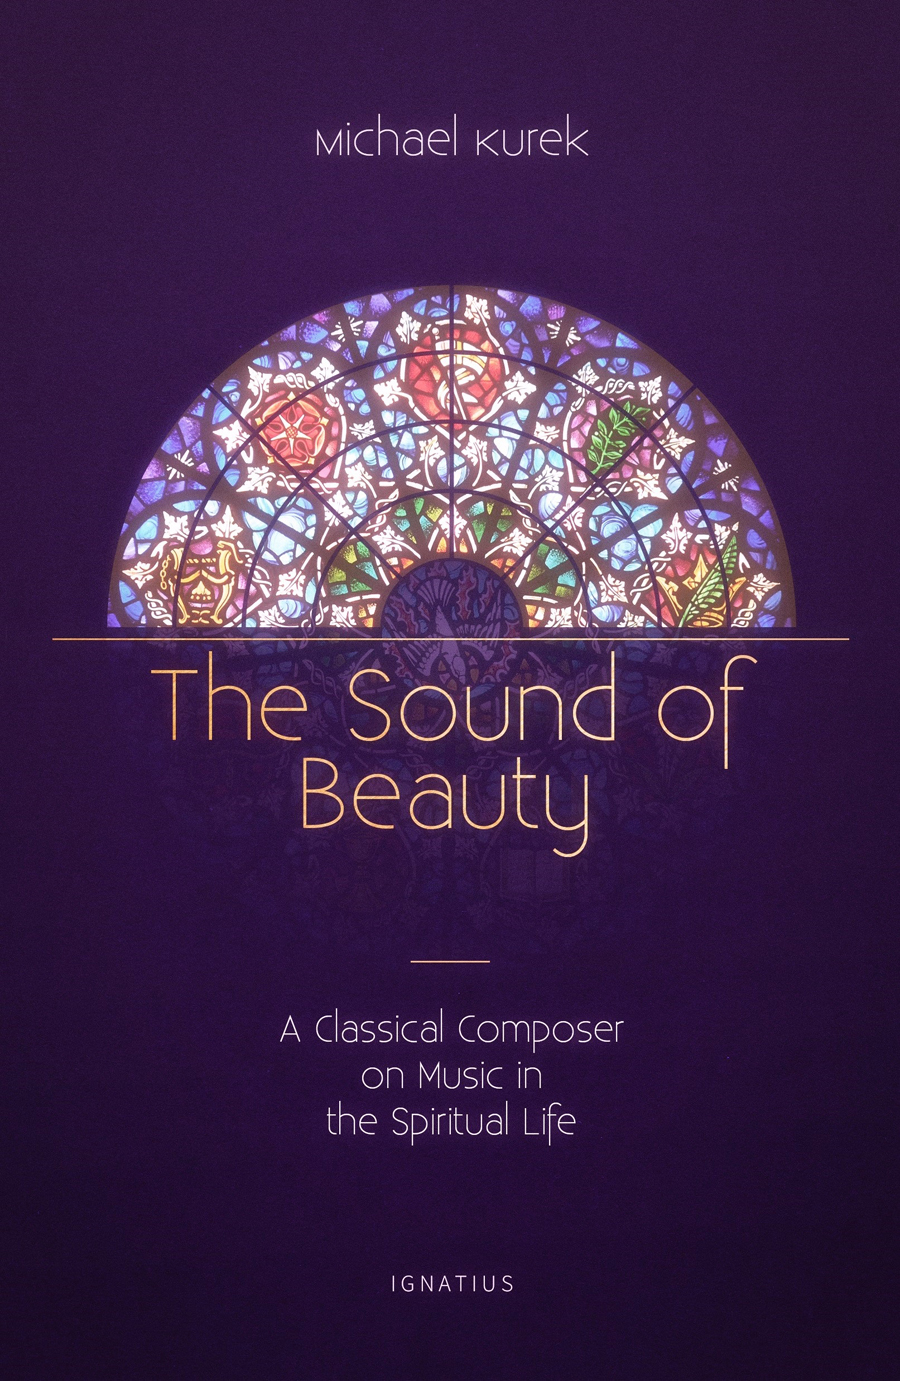 The Sound of Beauty